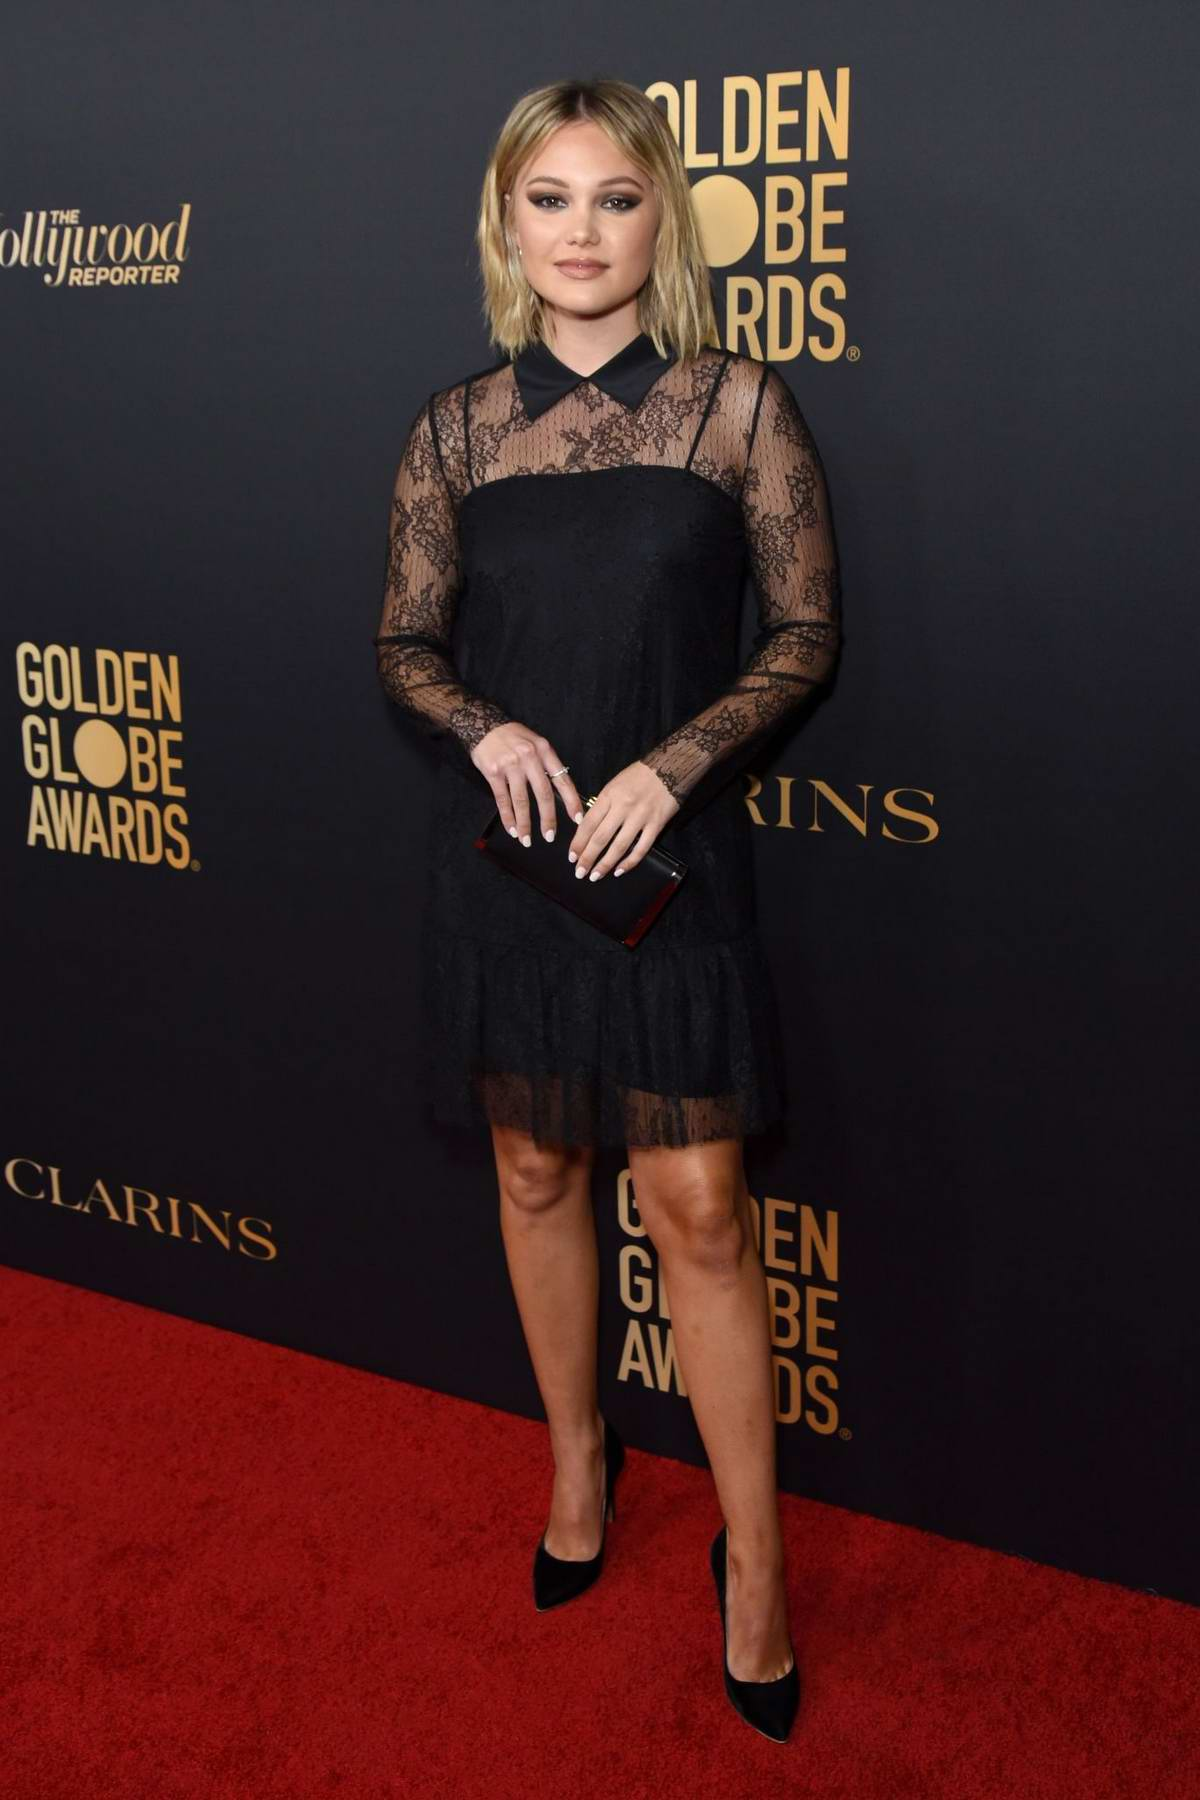 Olivia Holt attends the Golden Globe Ambassador Launch Party in Los Angeles